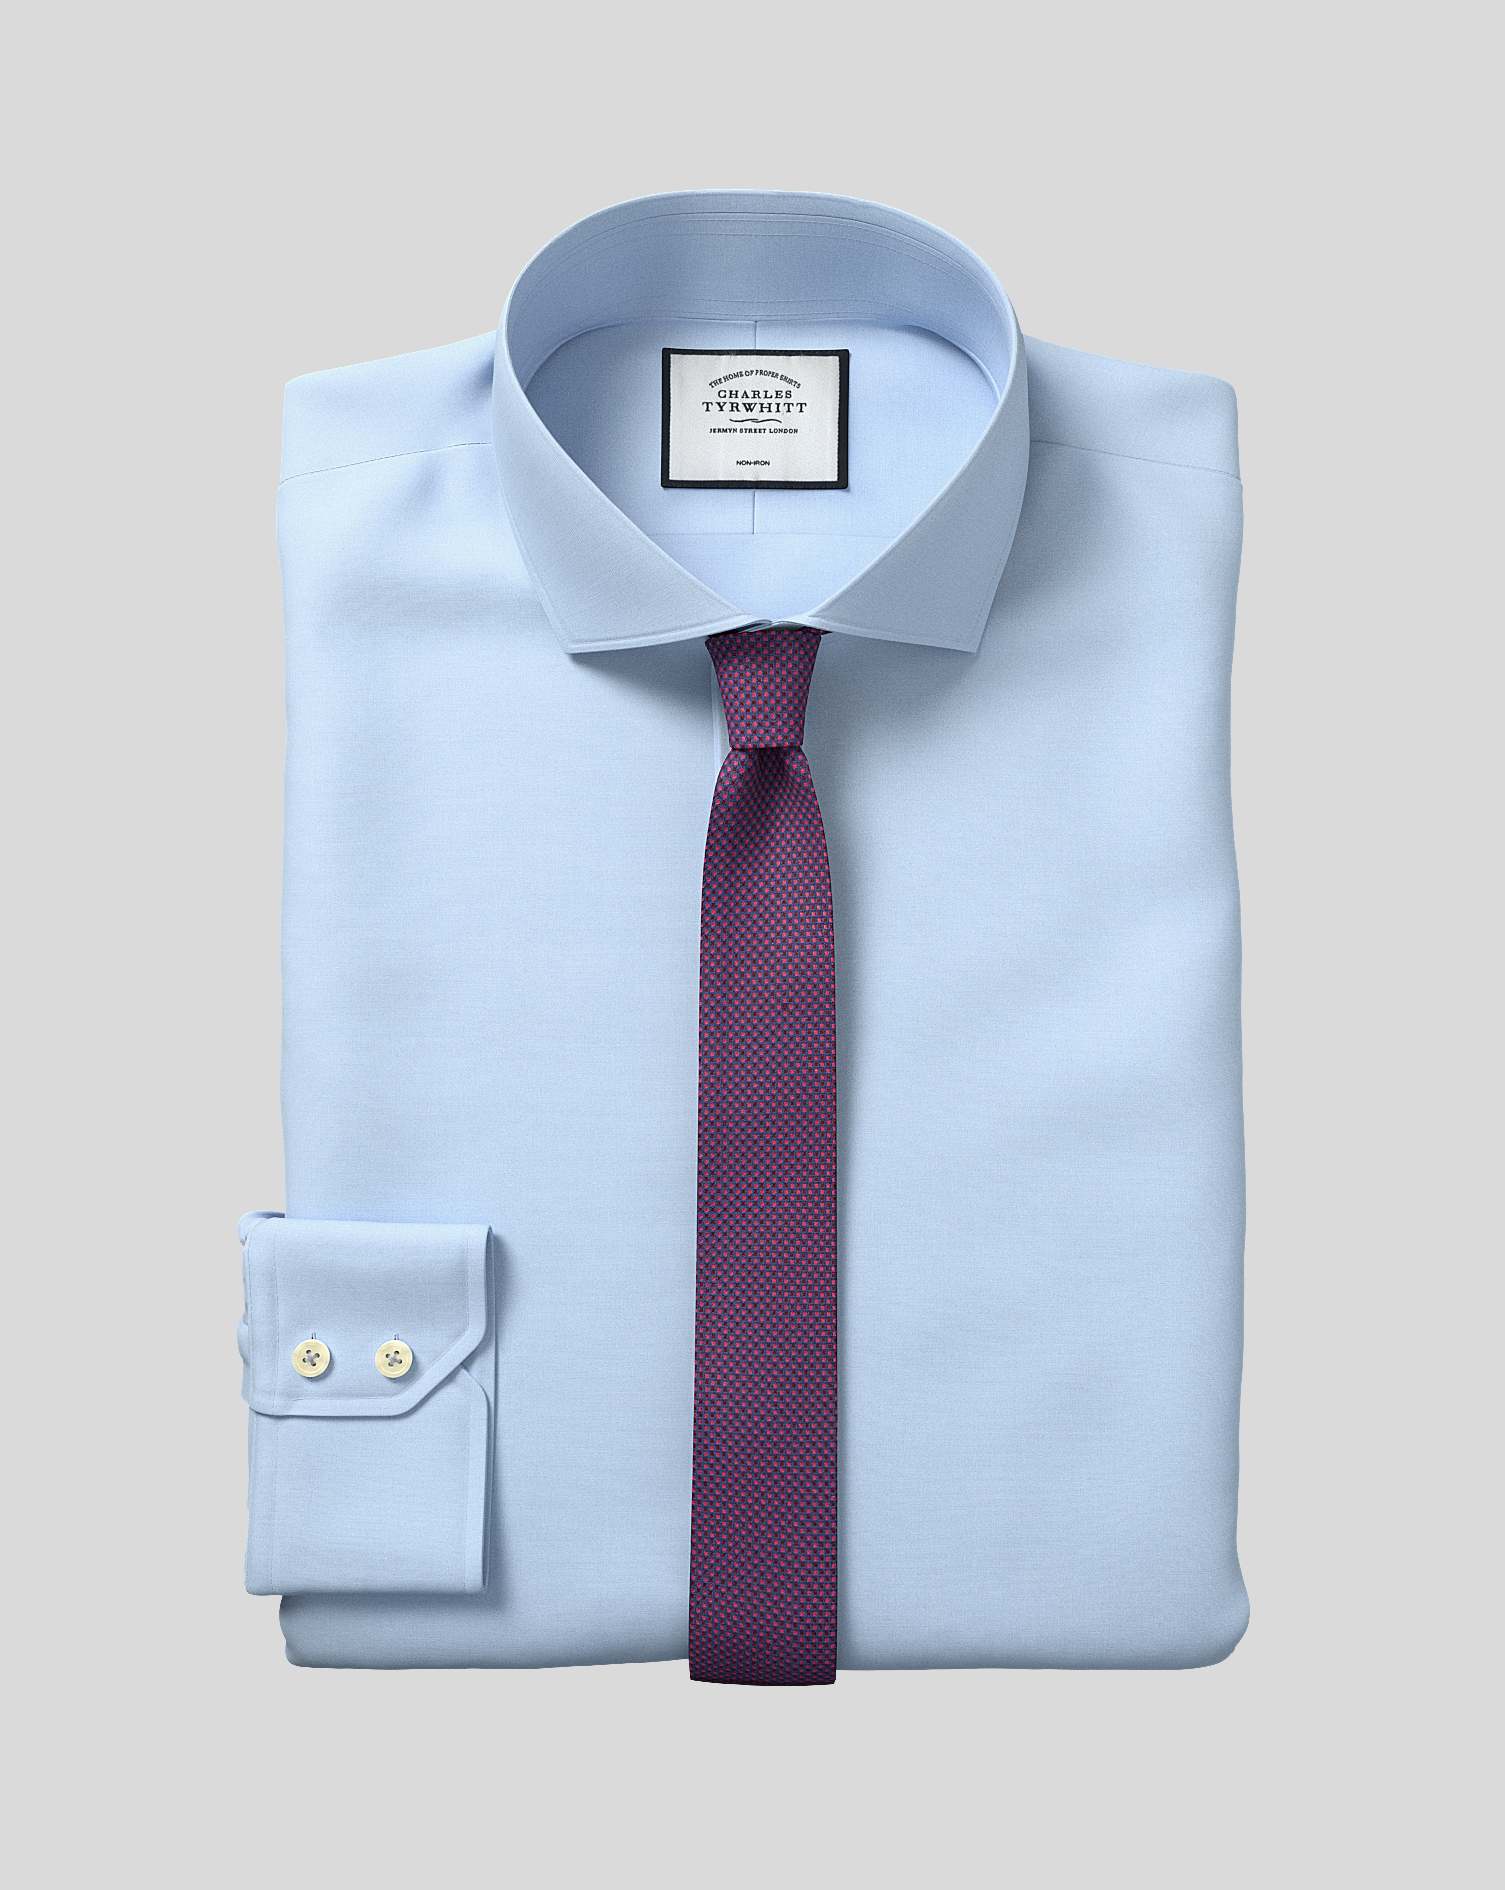 Extra Slim Fit Non-Iron Cutaway Sky Blue Tyrwhitt Cool Cotton Formal Shirt Single Cuff Size 16/33 by